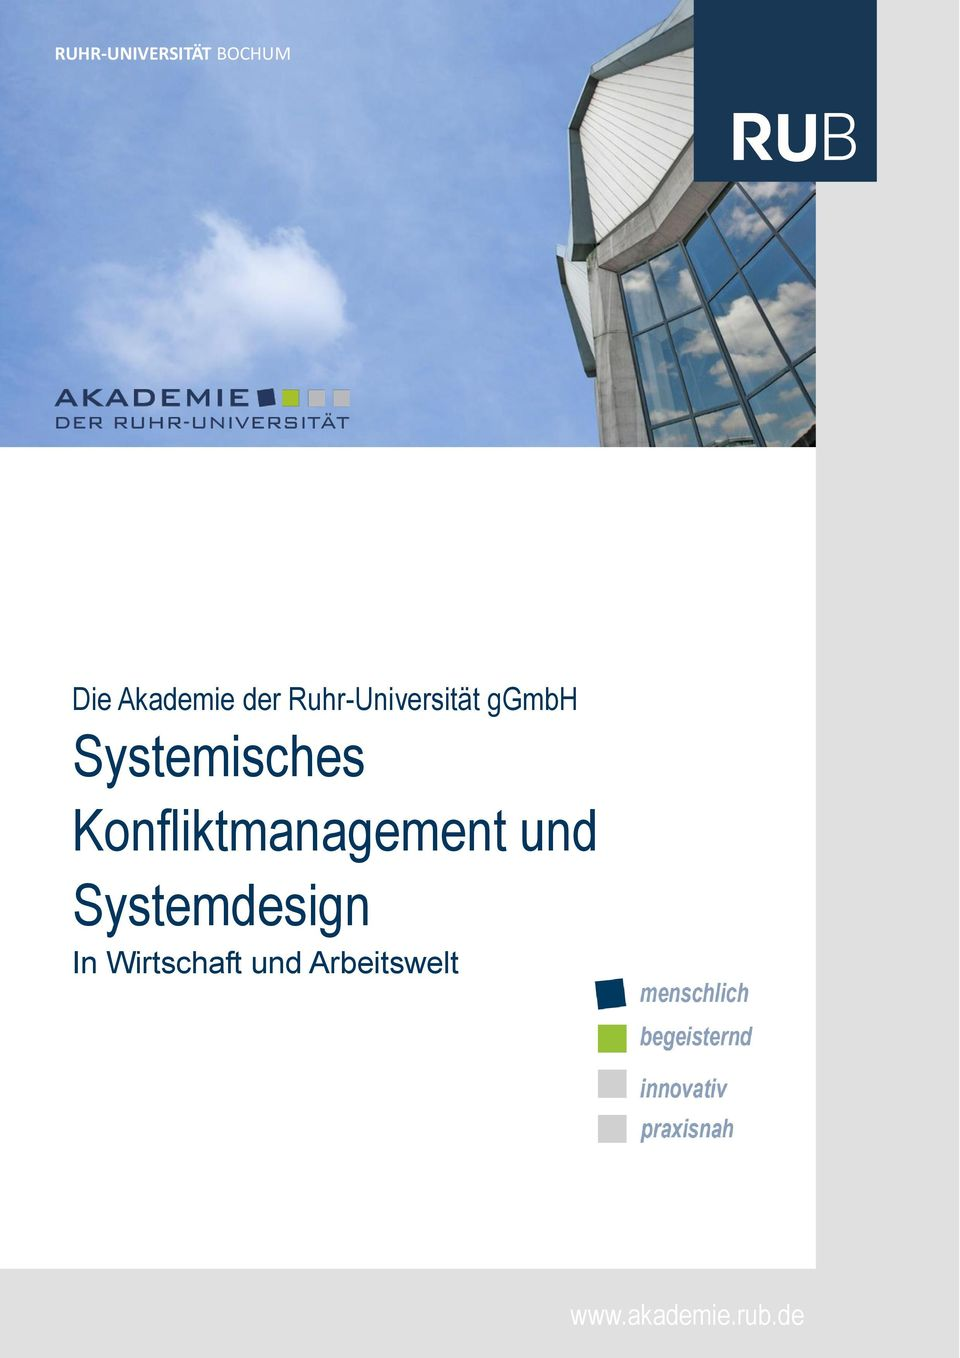 Konfliktmanagement und Systemdesign In